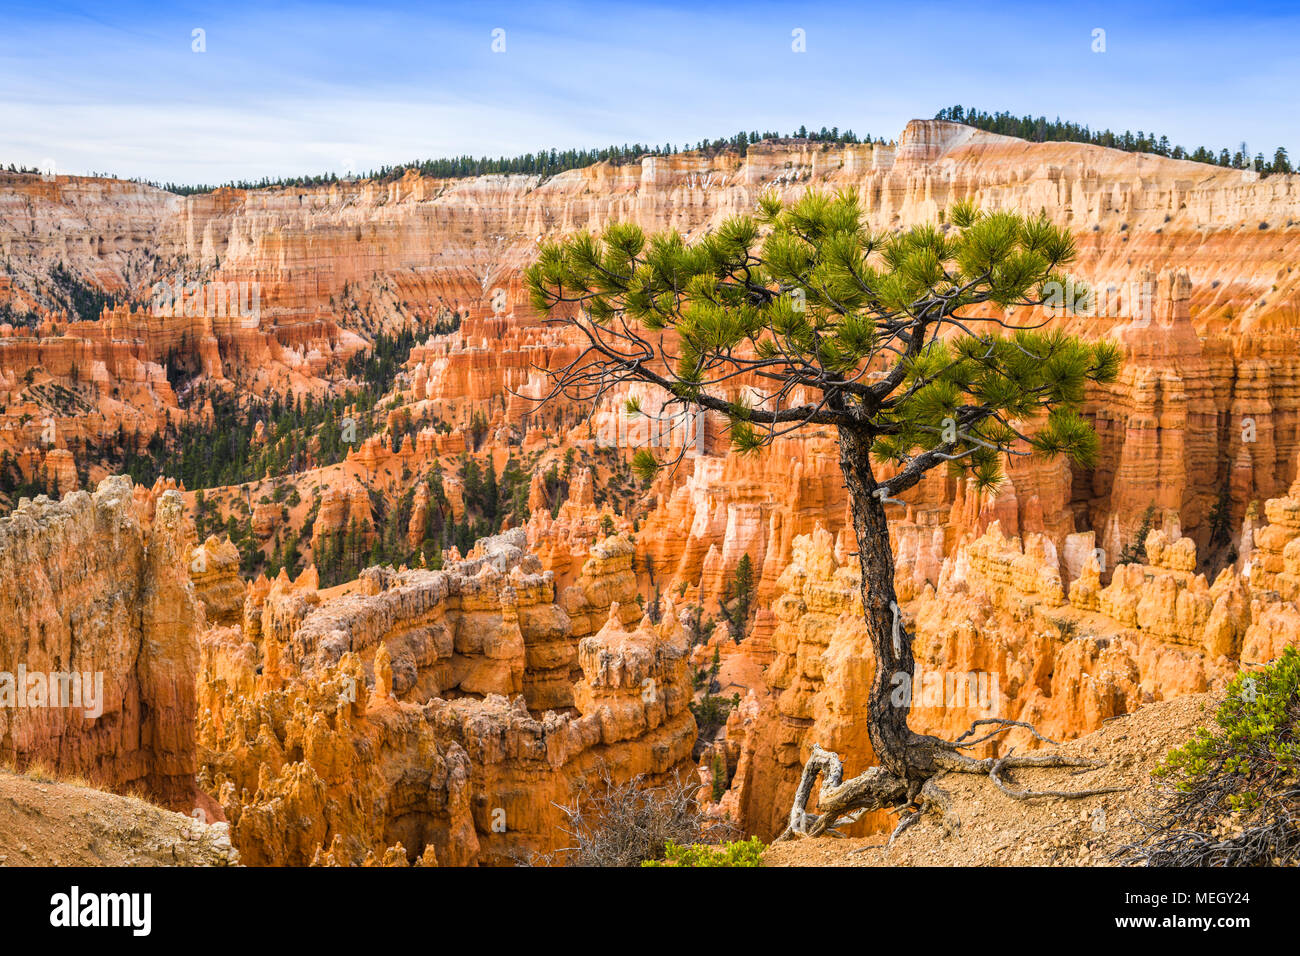 Bryce Canyon National Park, Utah, USA with a tree on the rim. - Stock Image